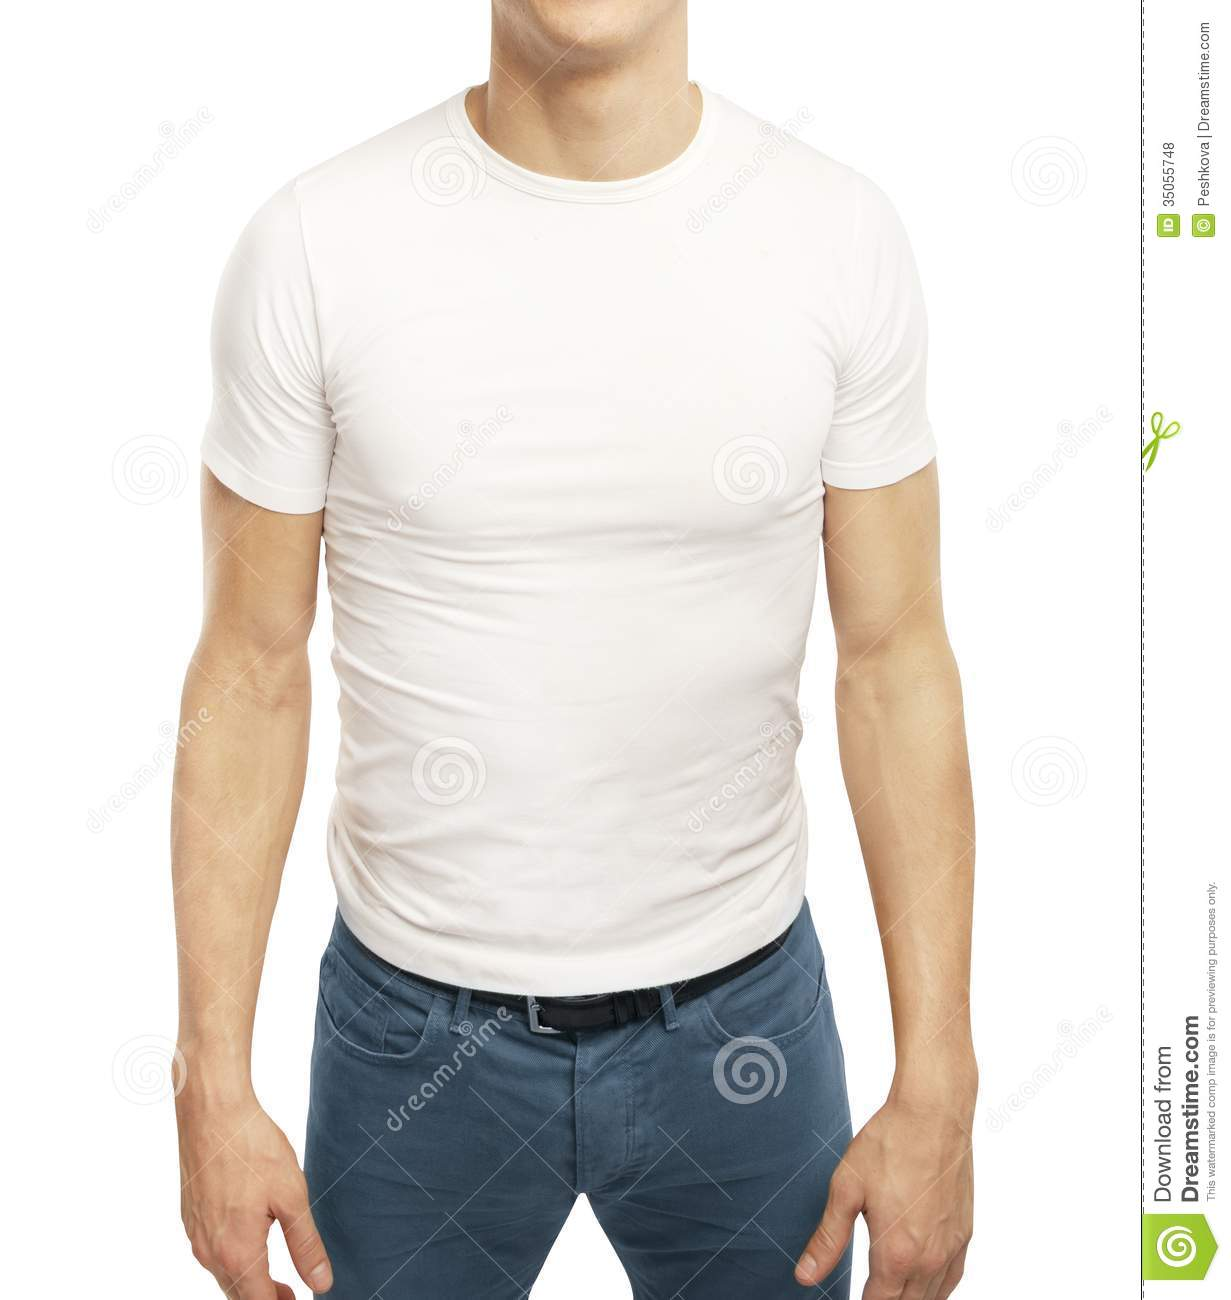 Guy In T-shirt Royalty Free Stock Photos - Image: 35055748